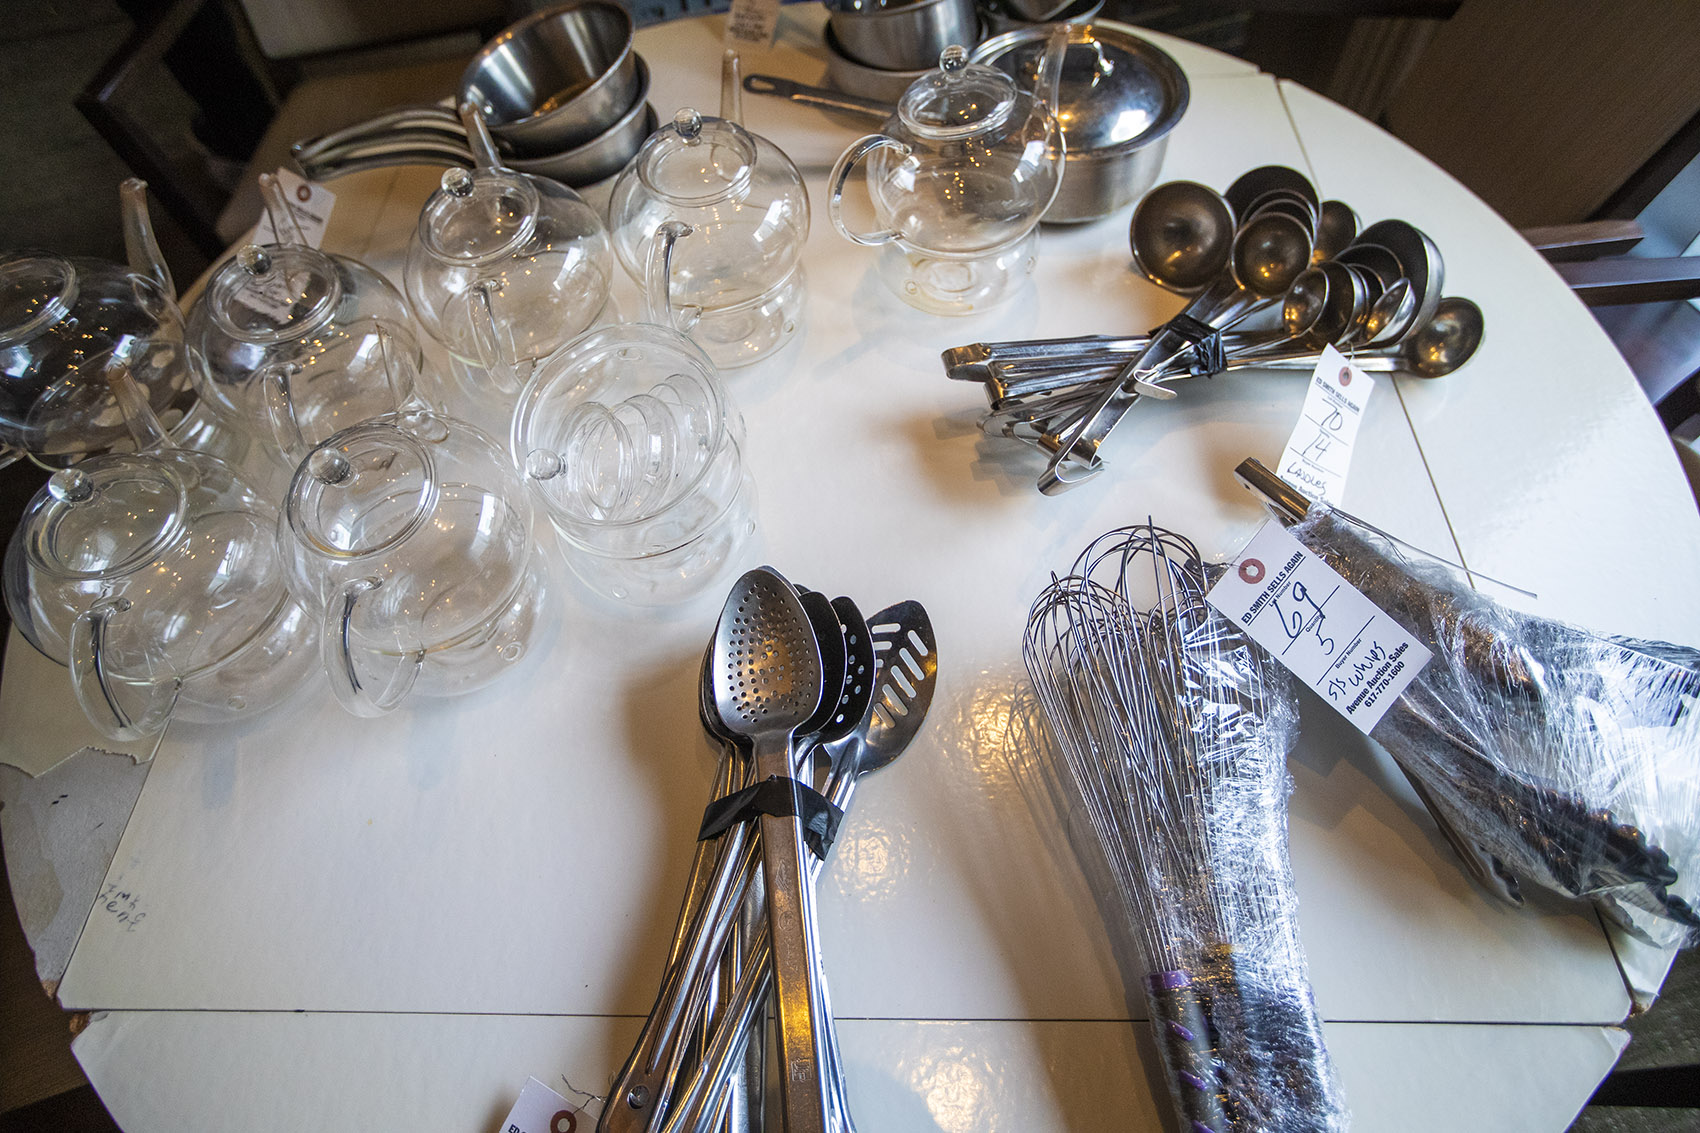 Kitchen utensils and assorted glassware up for auction at the L'Espalier auction. (Jesse Costa/WBUR)